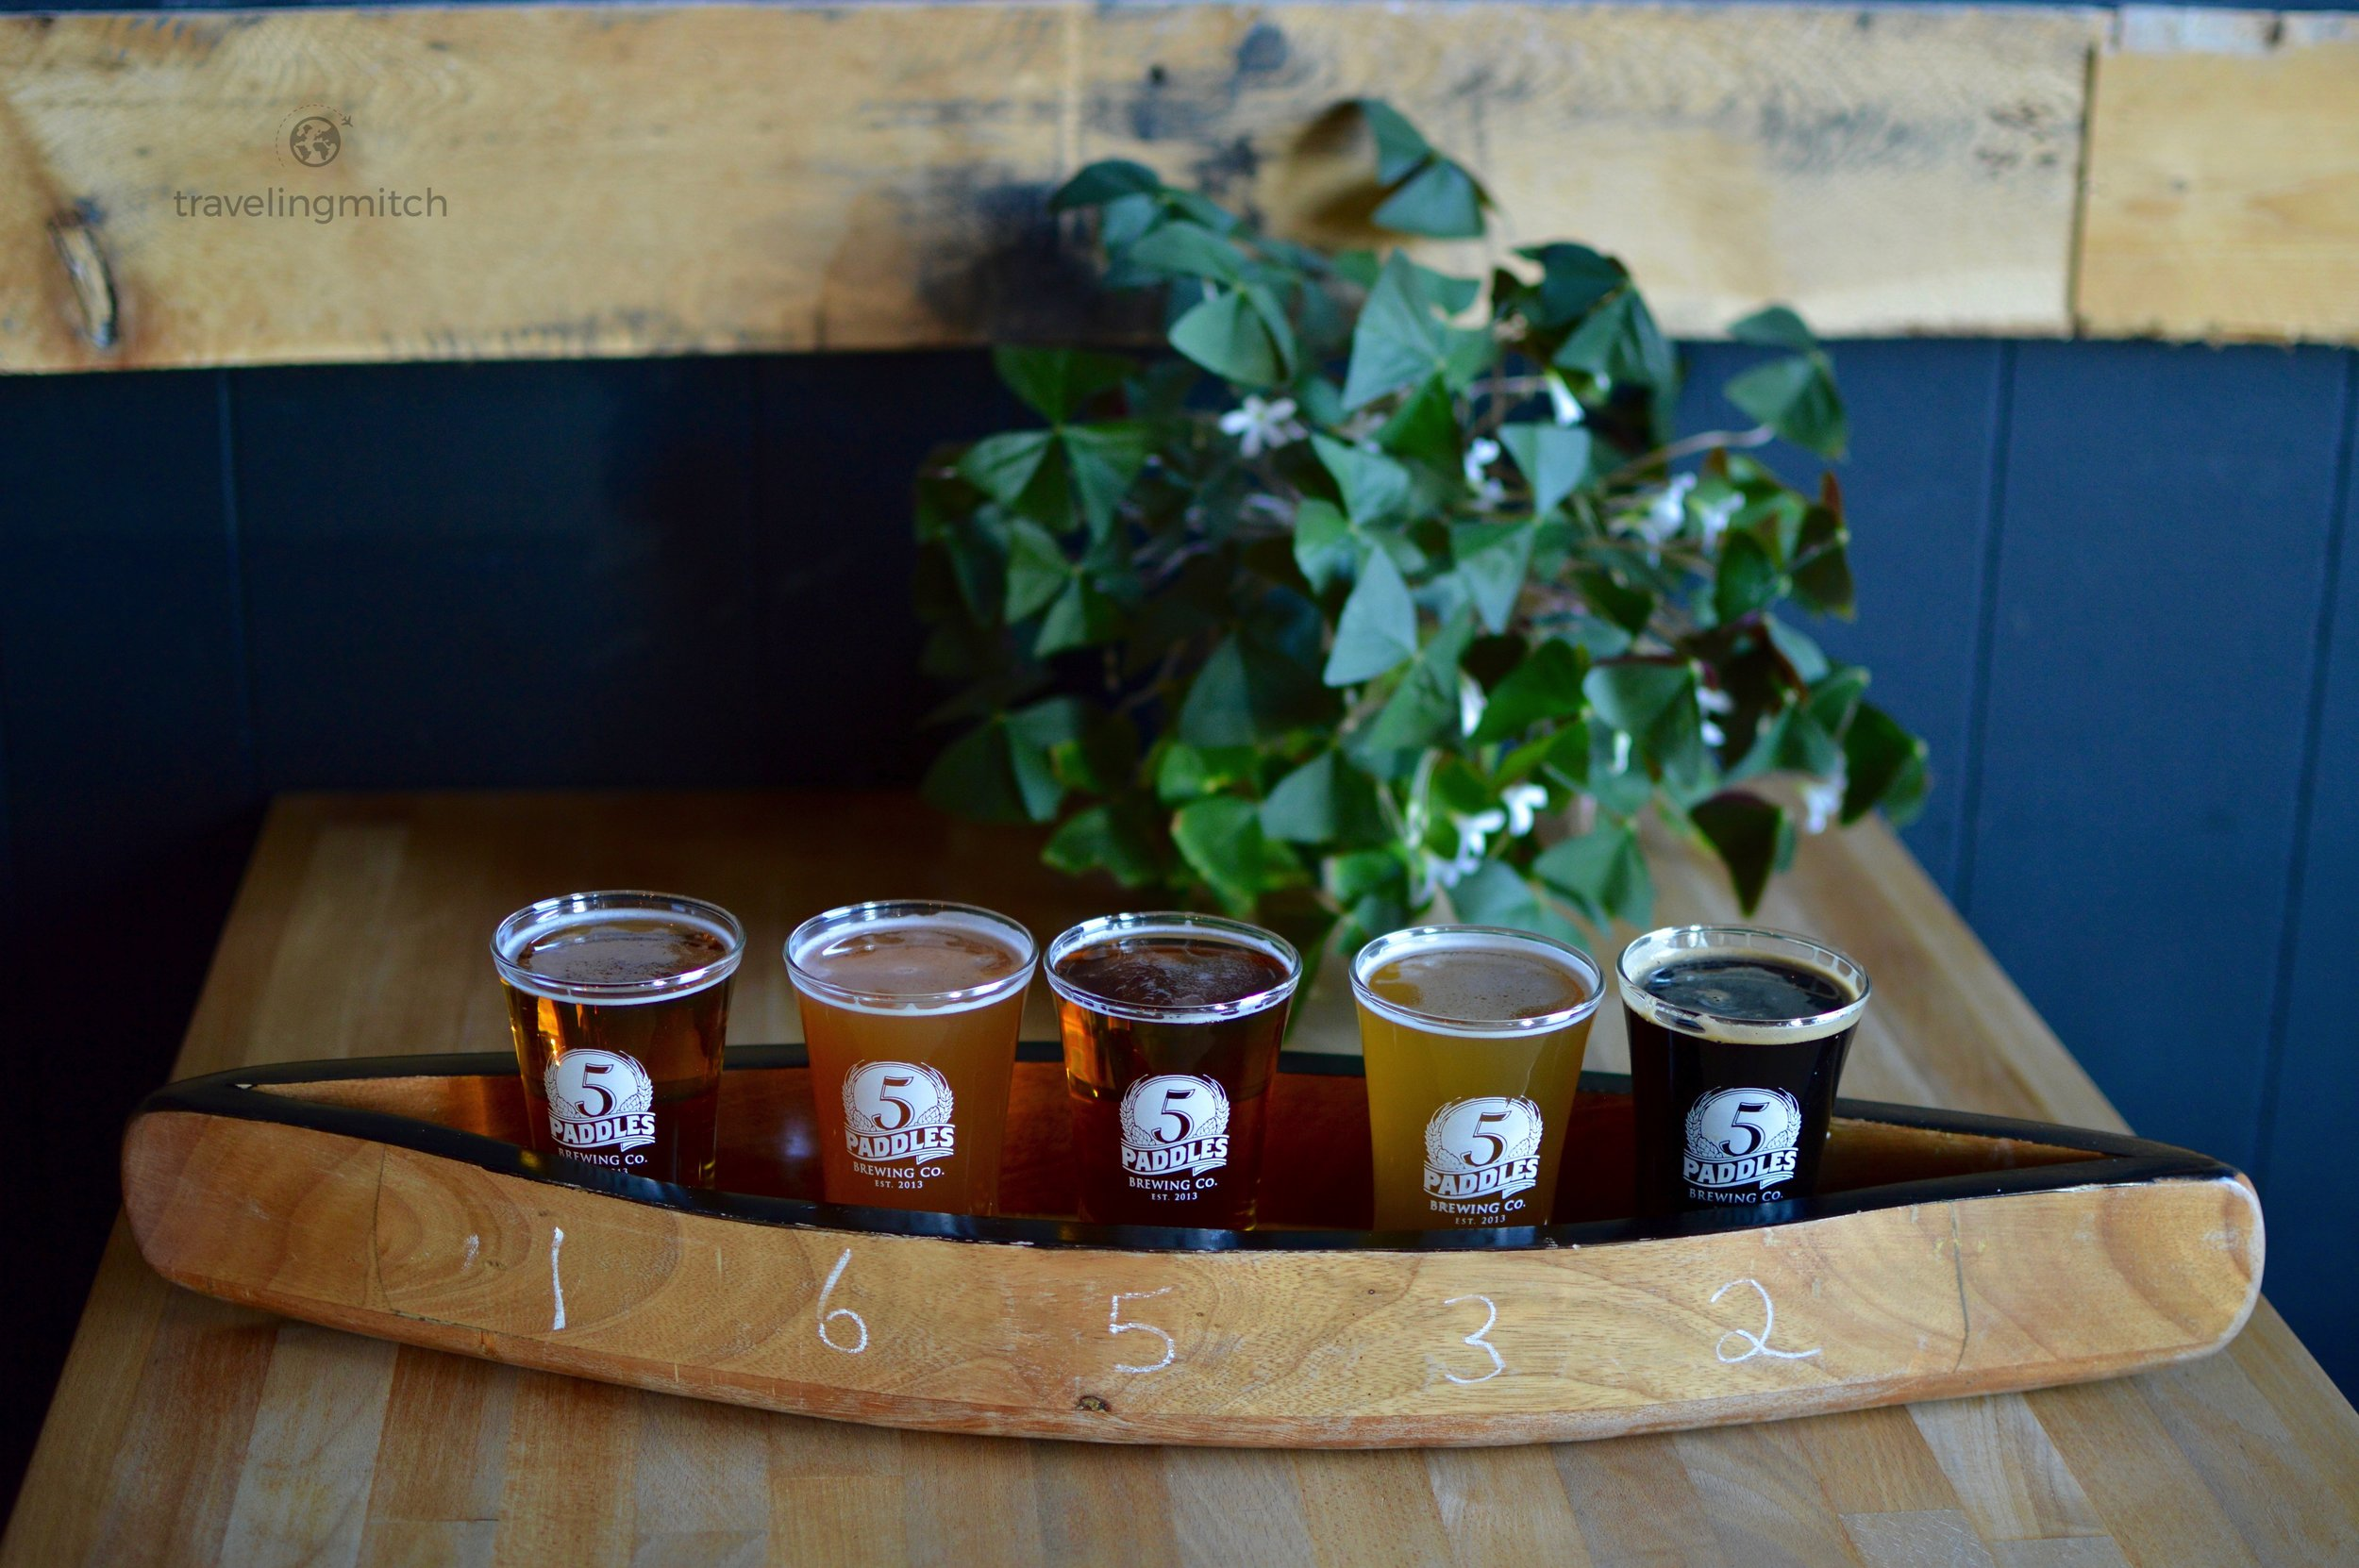 At the 5 Paddles Brewing Co. in Whitby, Ontario. From left tor right - Home Sweet Home, Strawberry Wheat, Italian Backyard, Skull Pucker, and Valley of Darkness